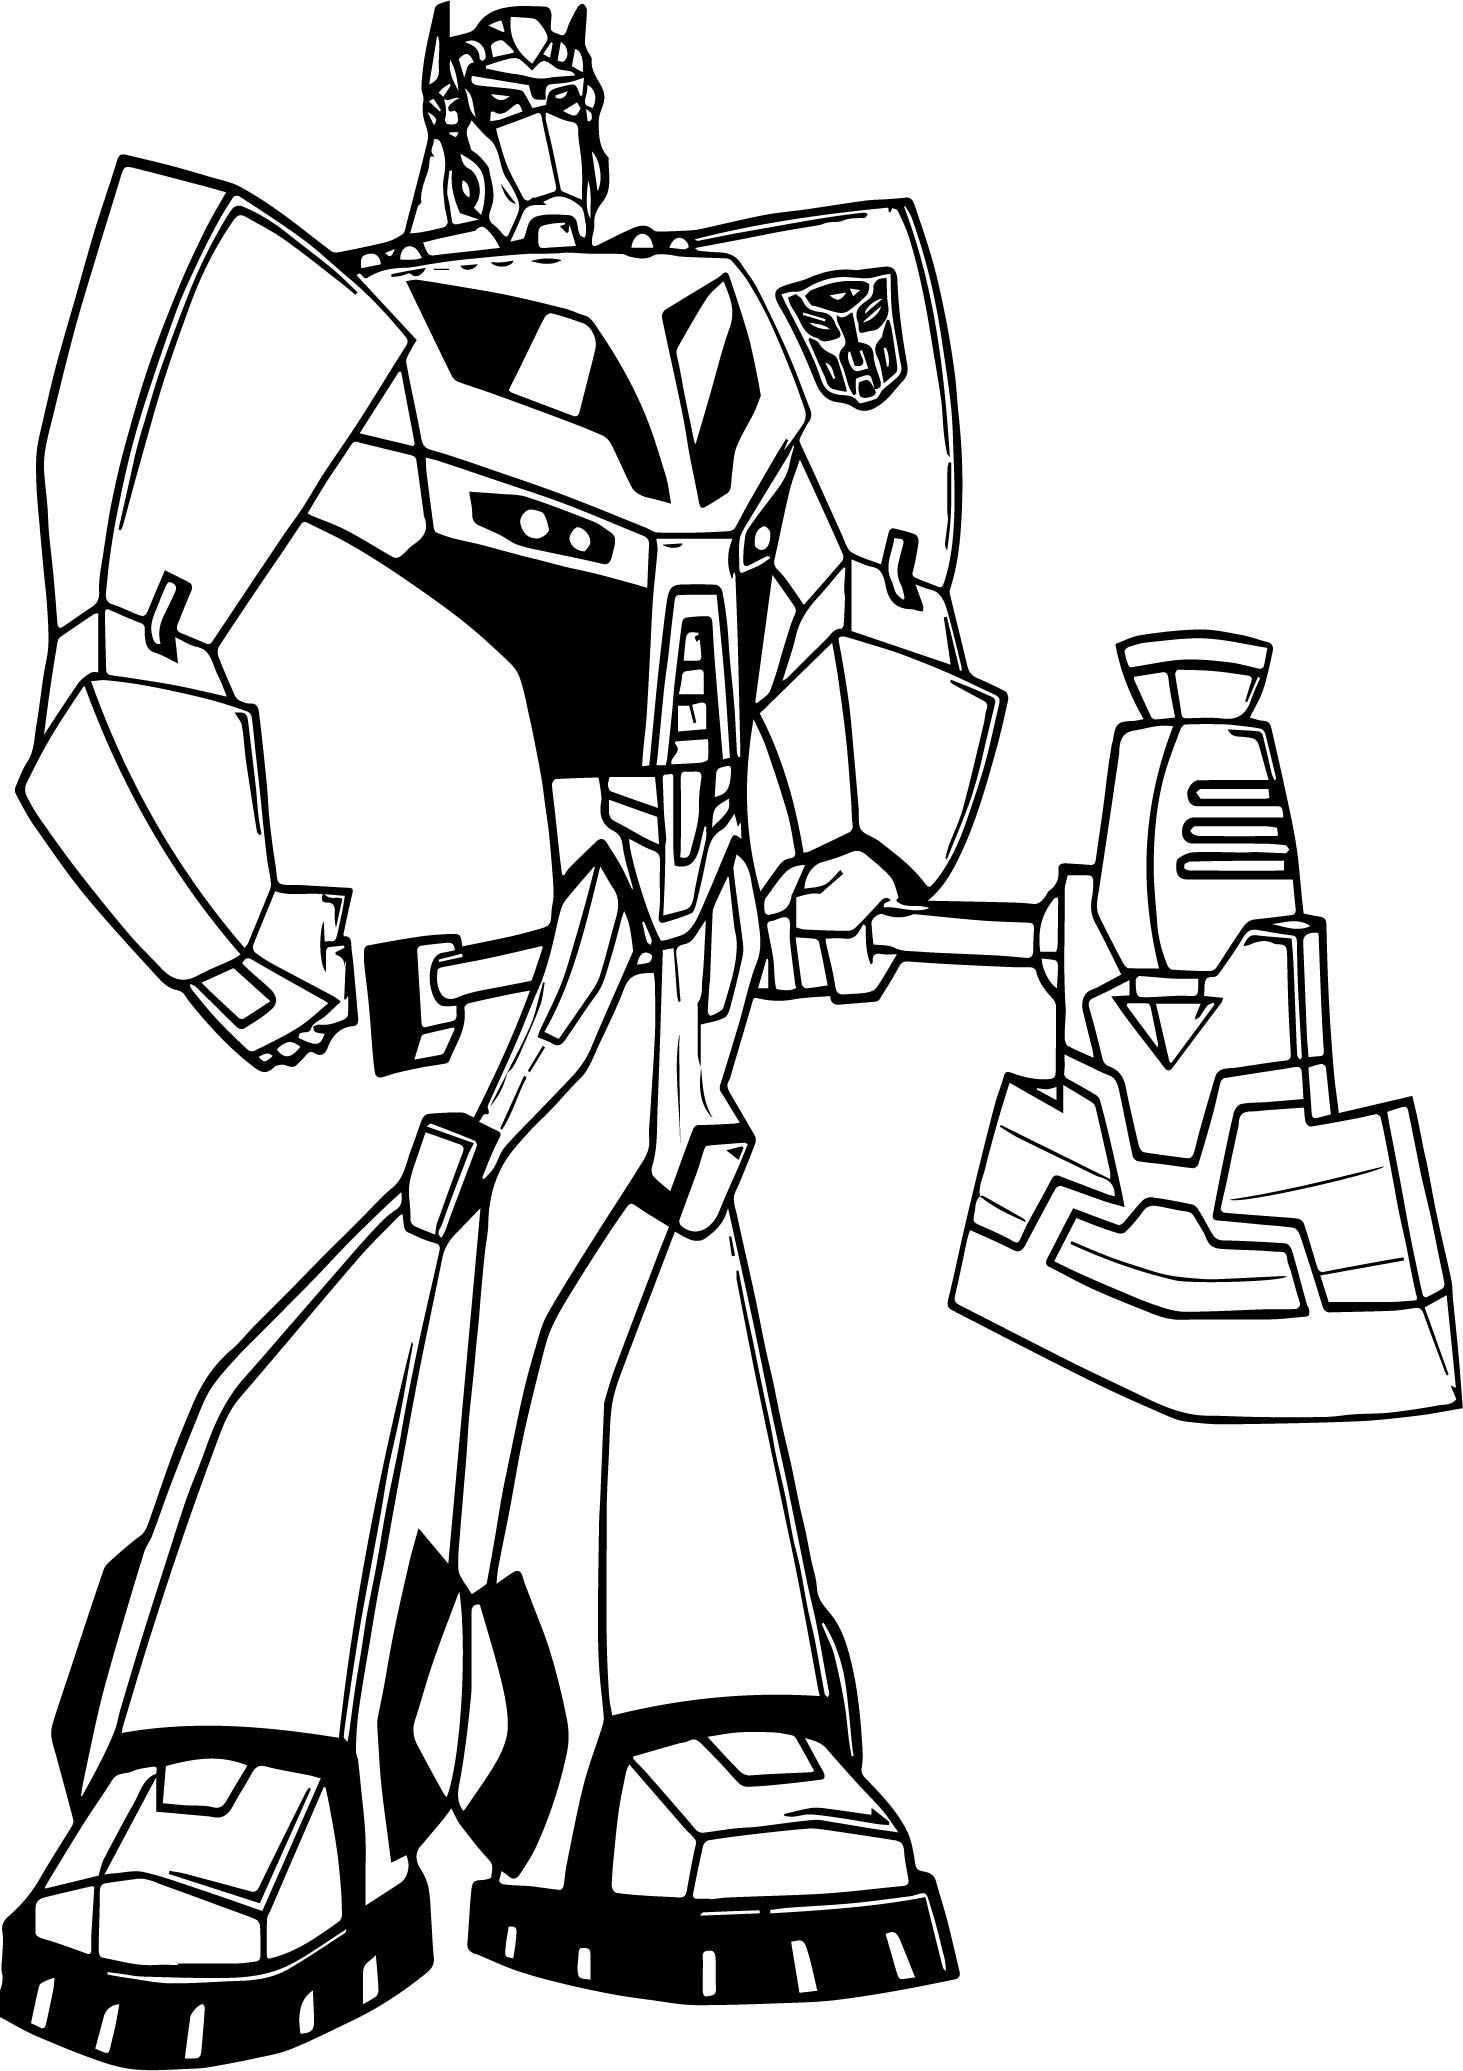 Awesome transformers blade coloring page color it my stress